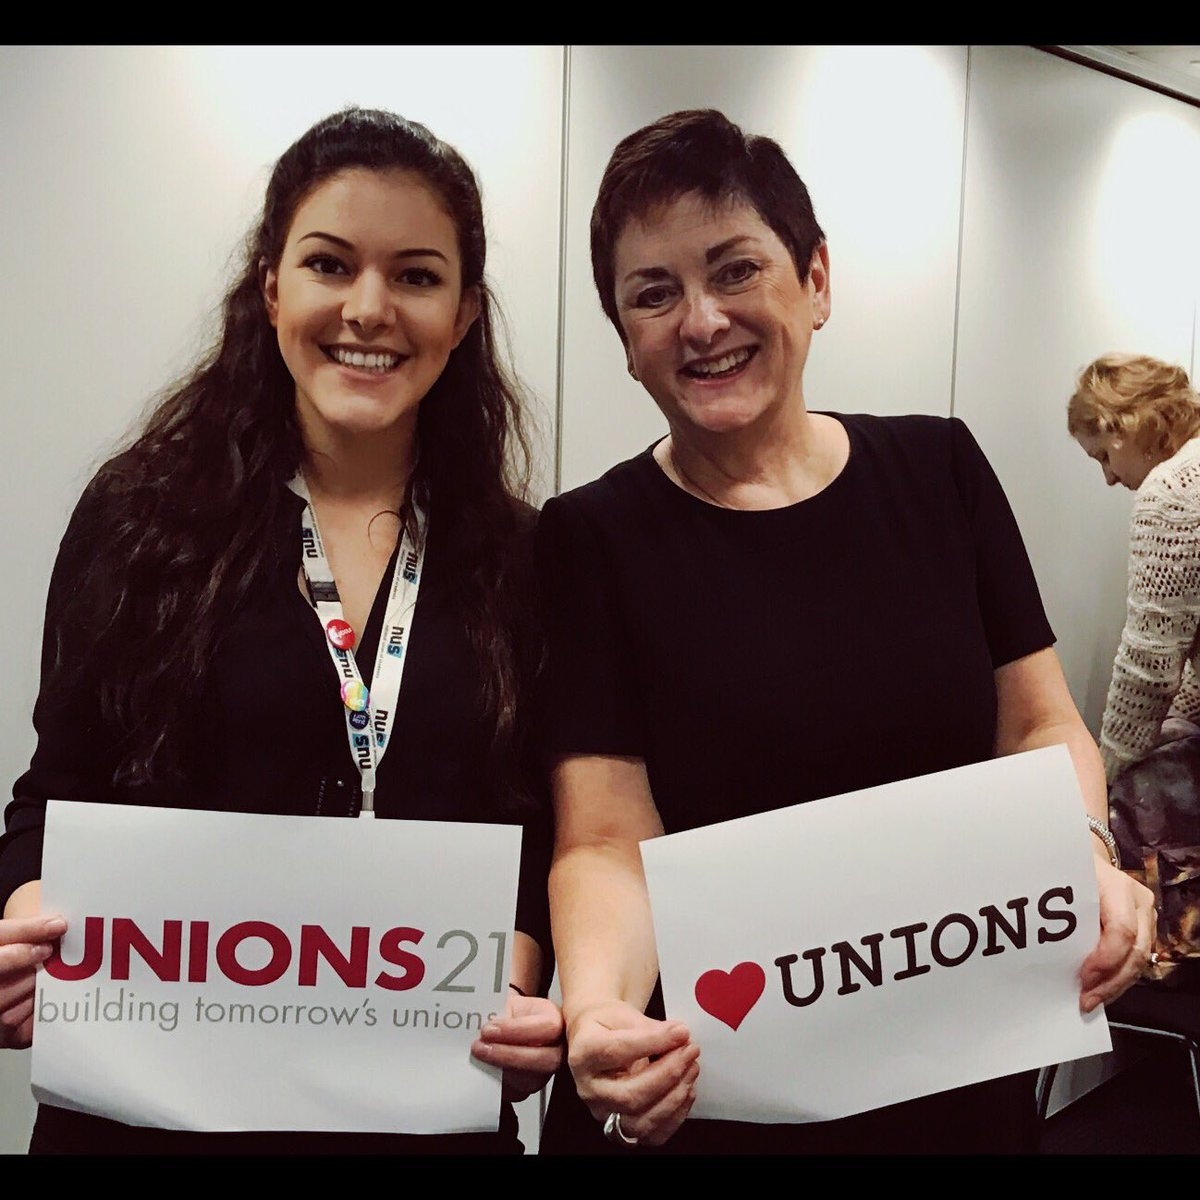 Unions and the Gender Pay Gap